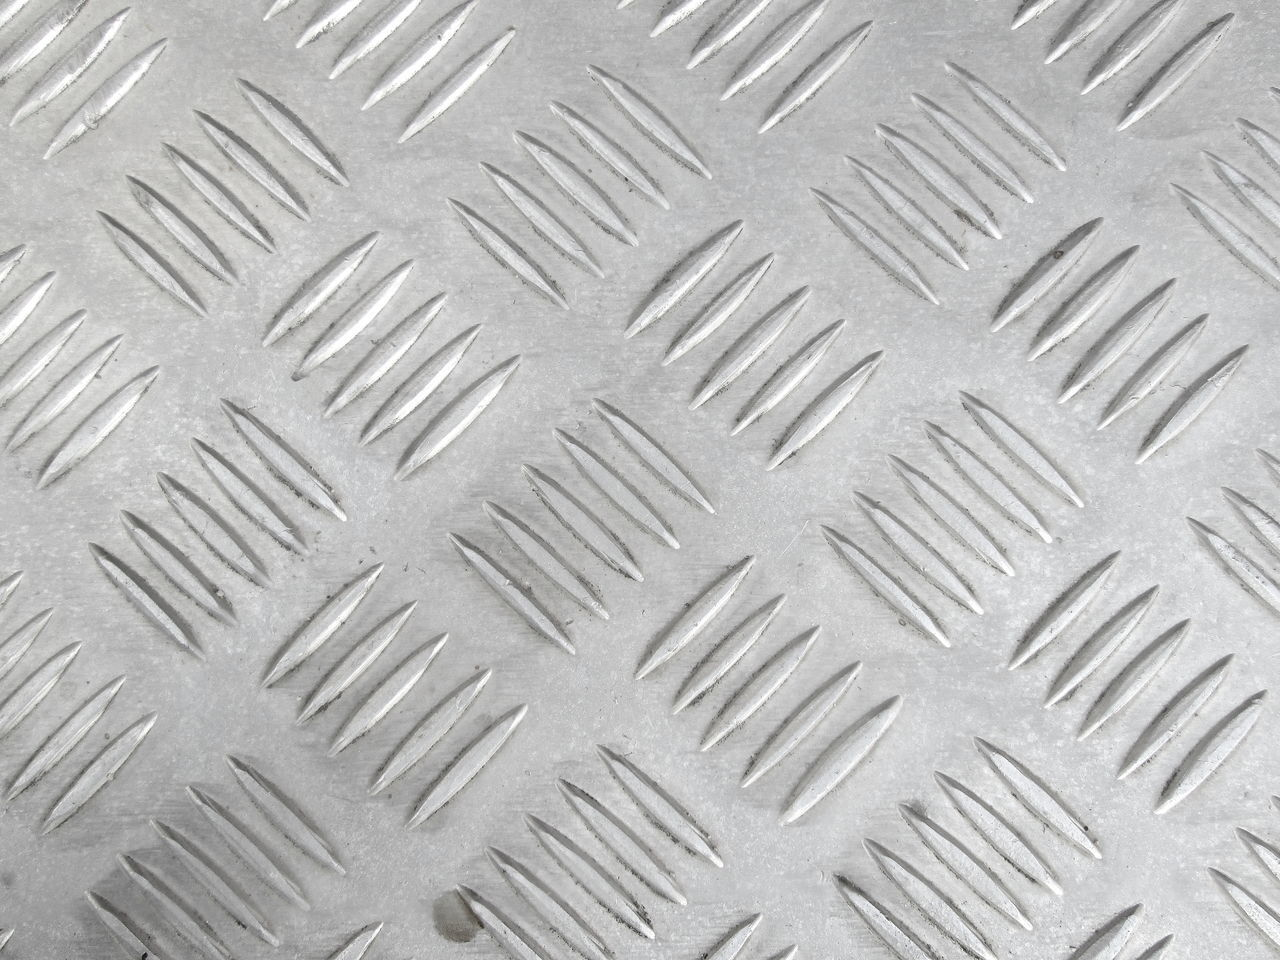 backgrounds, full frame, pattern, textured, metal, silver colored, gray, close-up, seamless pattern, no people, brushed metal, indoors, day